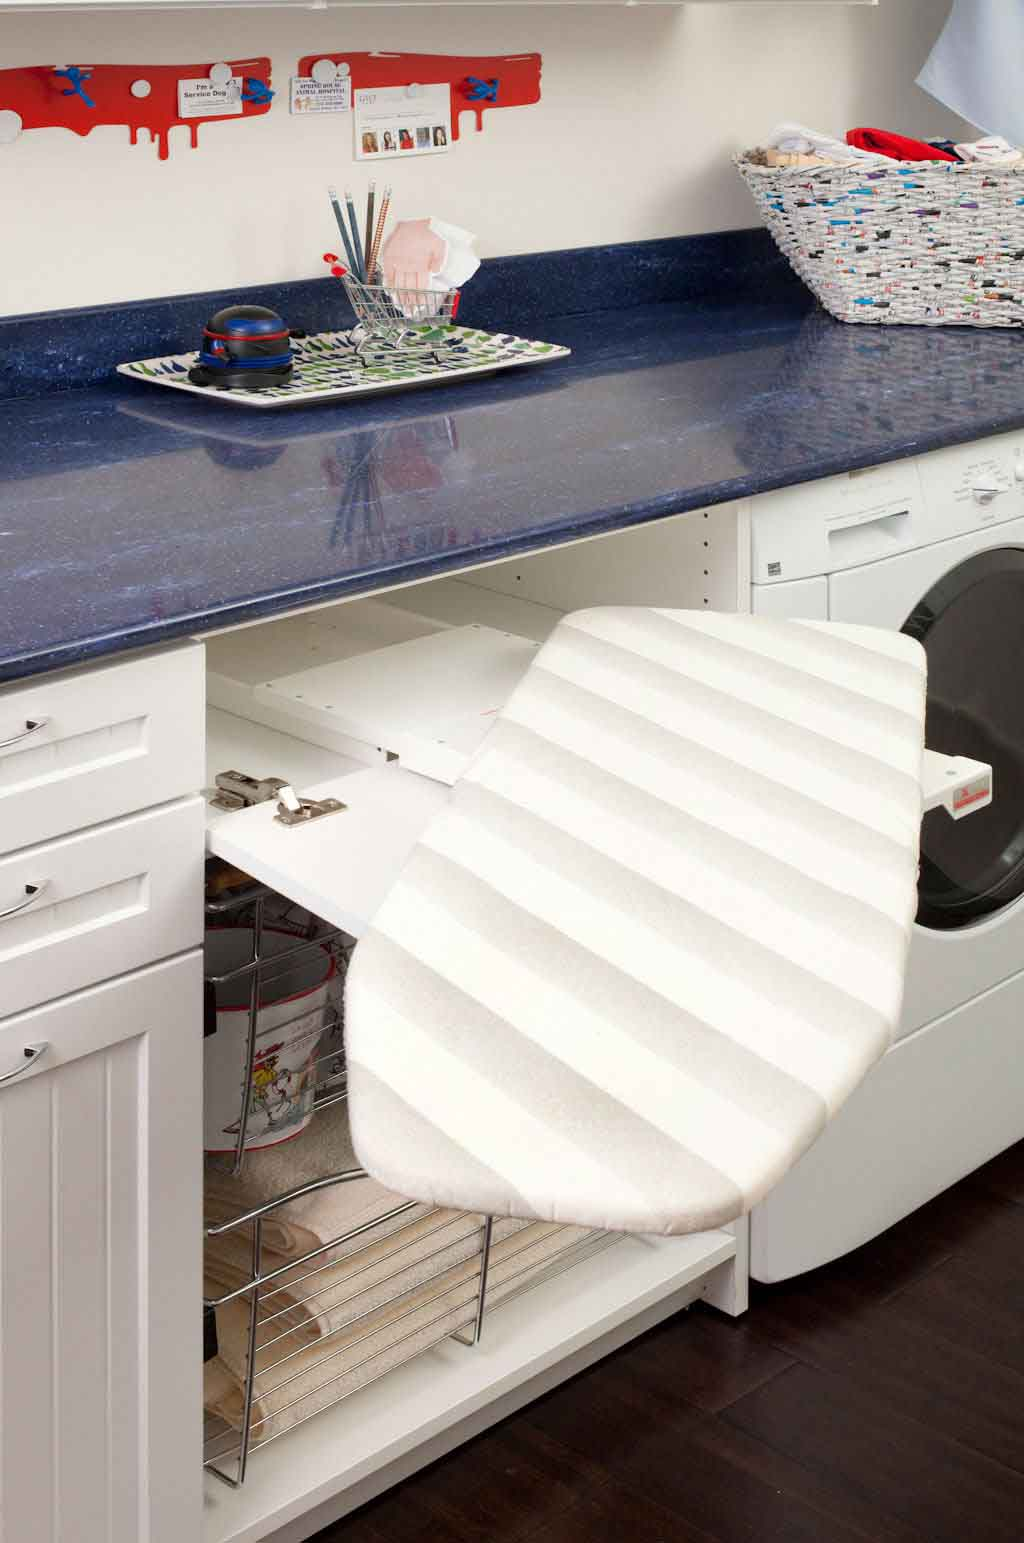 fold out ironing board in laundry room closet